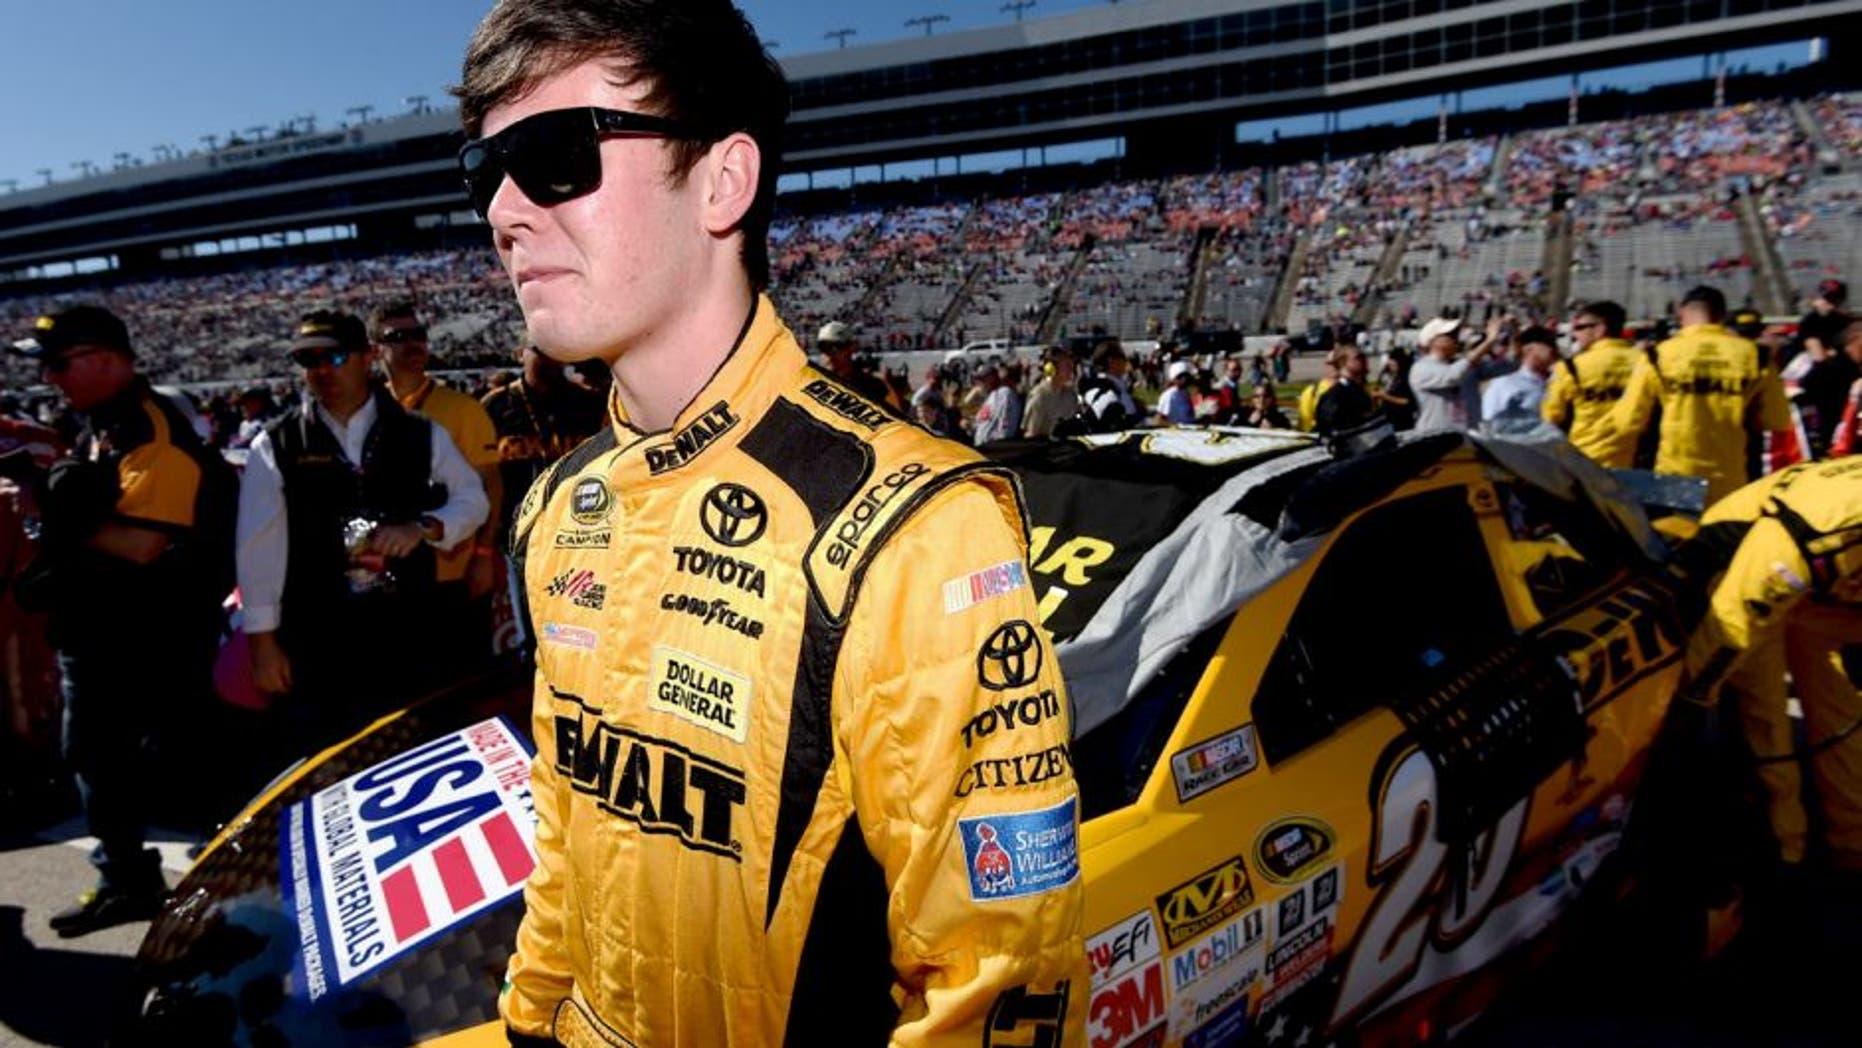 FORT WORTH, TX - NOVEMBER 08: Erik Jones, driver of the #20 DeWalt Toyota, stands on the grid during the NASCAR Sprint Cup Series AAA Texas 500 at Texas Motor Speedway on November 8, 2015 in Fort Worth, Texas. (Photo by Rainier Ehrhardt/NASCAR via Getty Images)